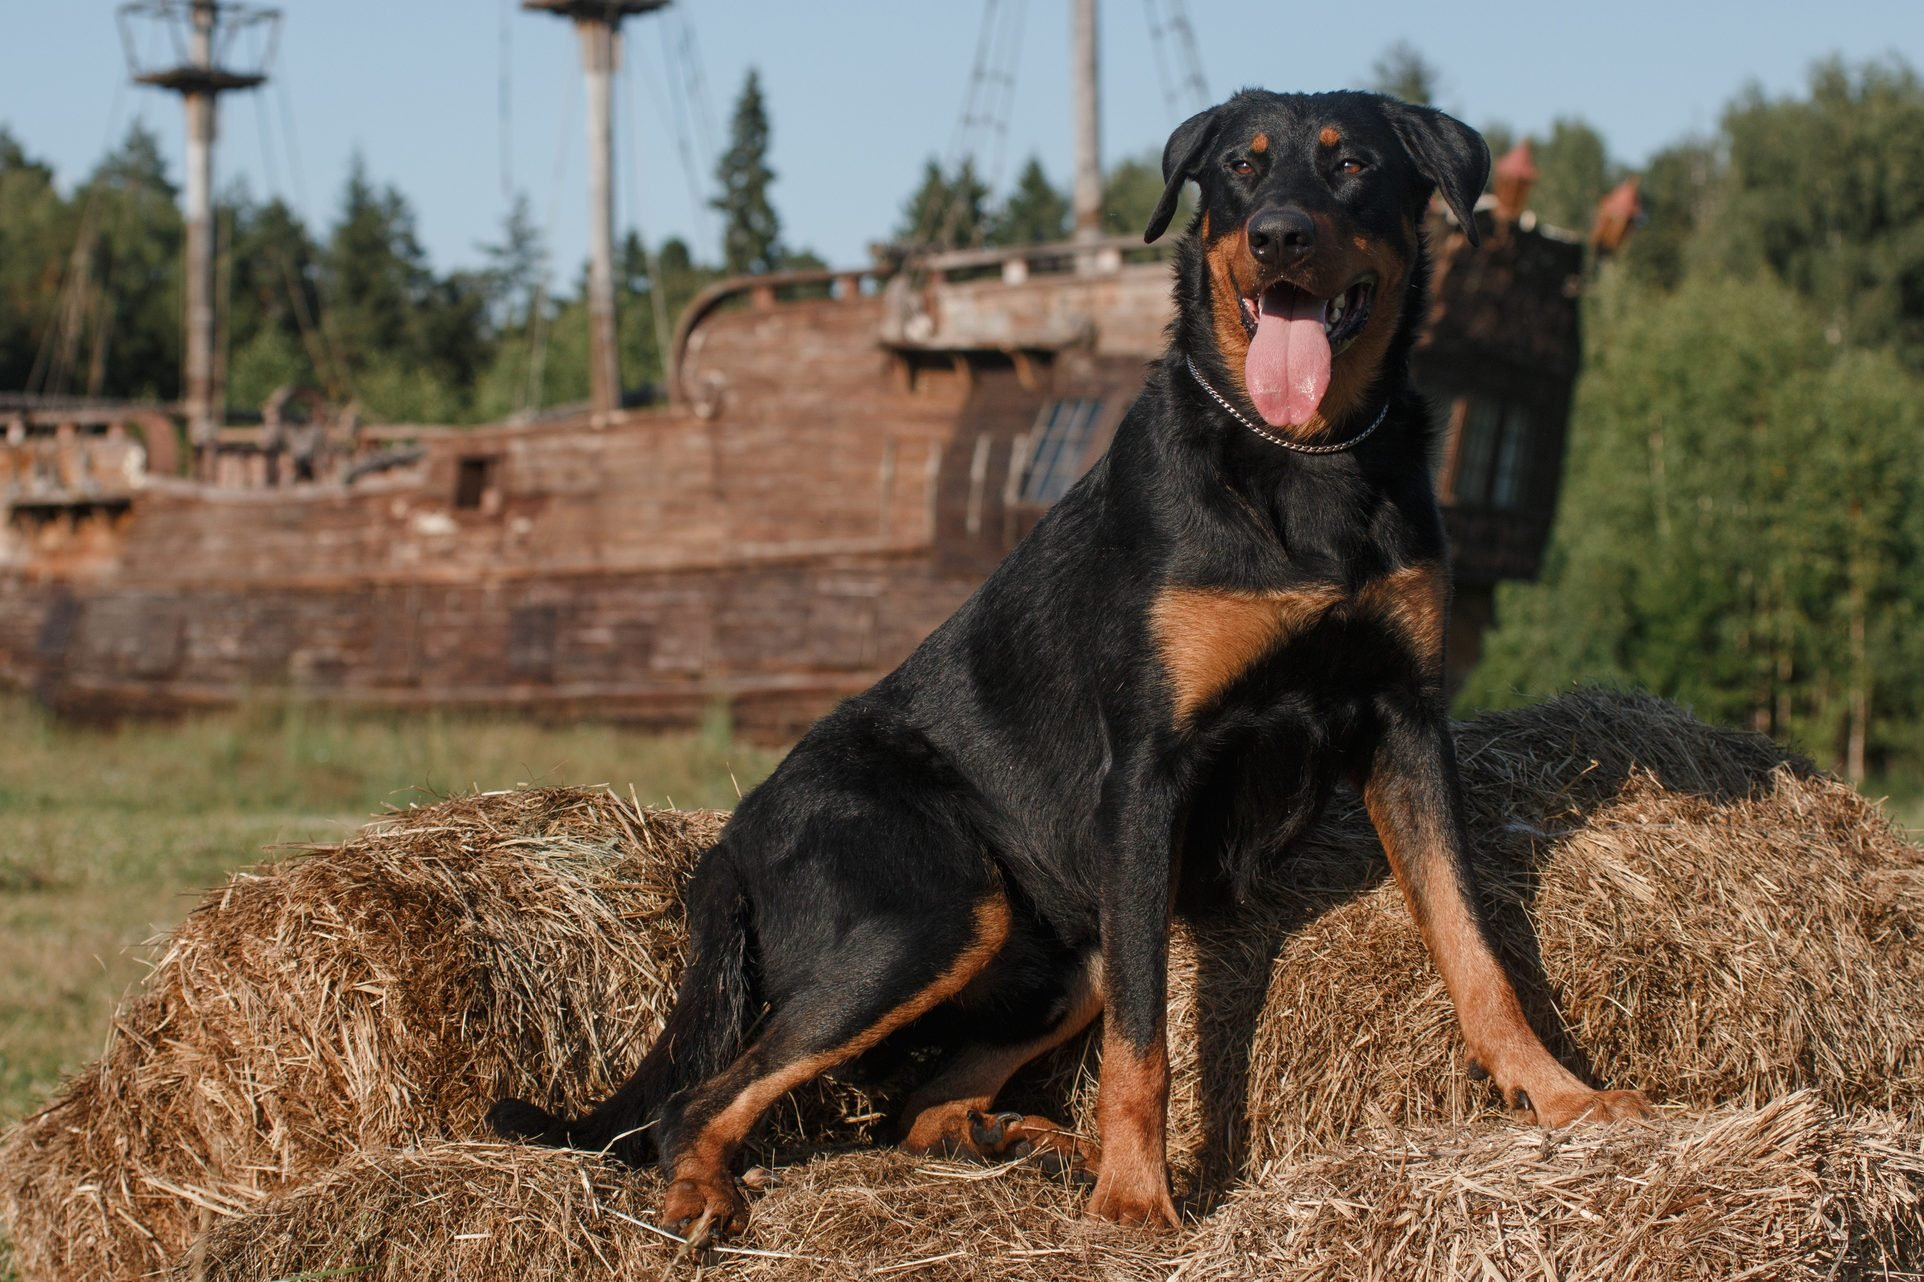 black big dog of the breed beauceron (french shepherd) lies on the hay